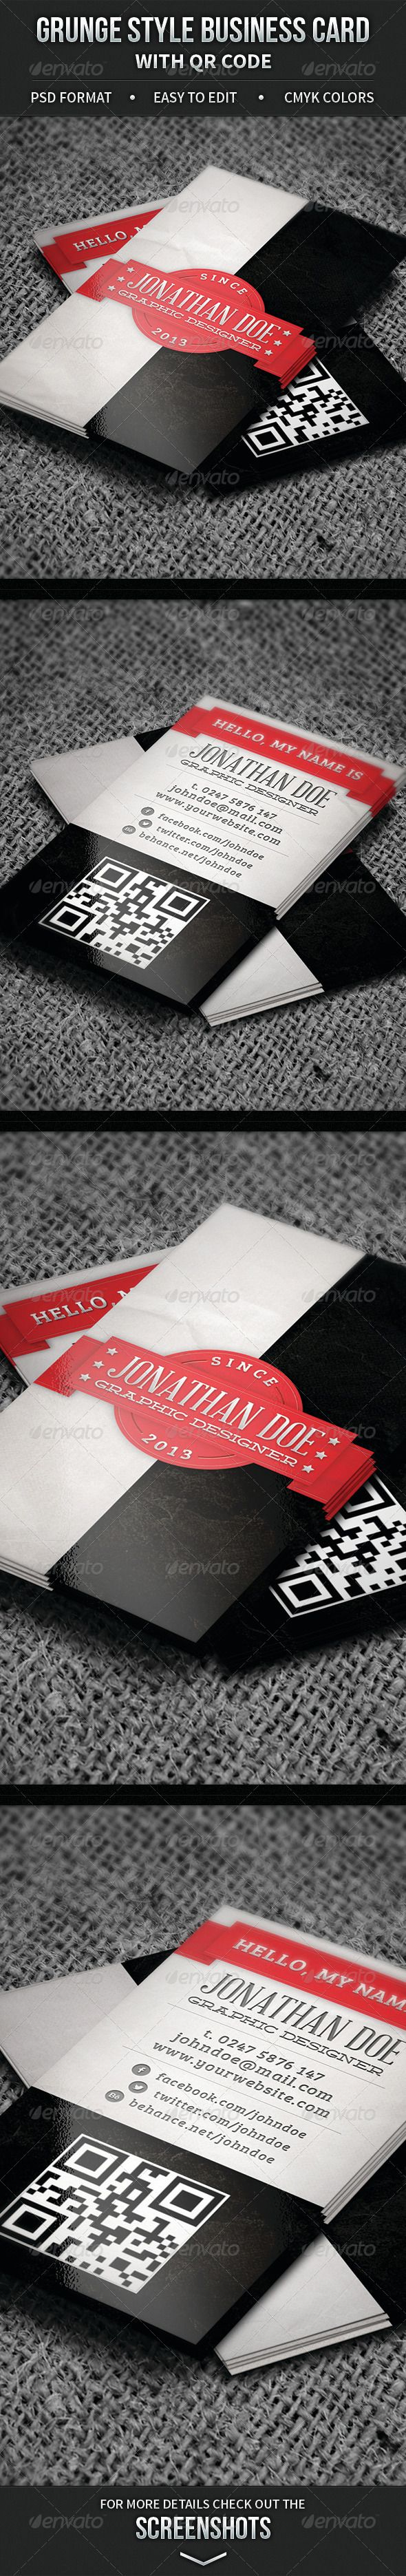 20 best Business card design inspirations images on Pinterest ...